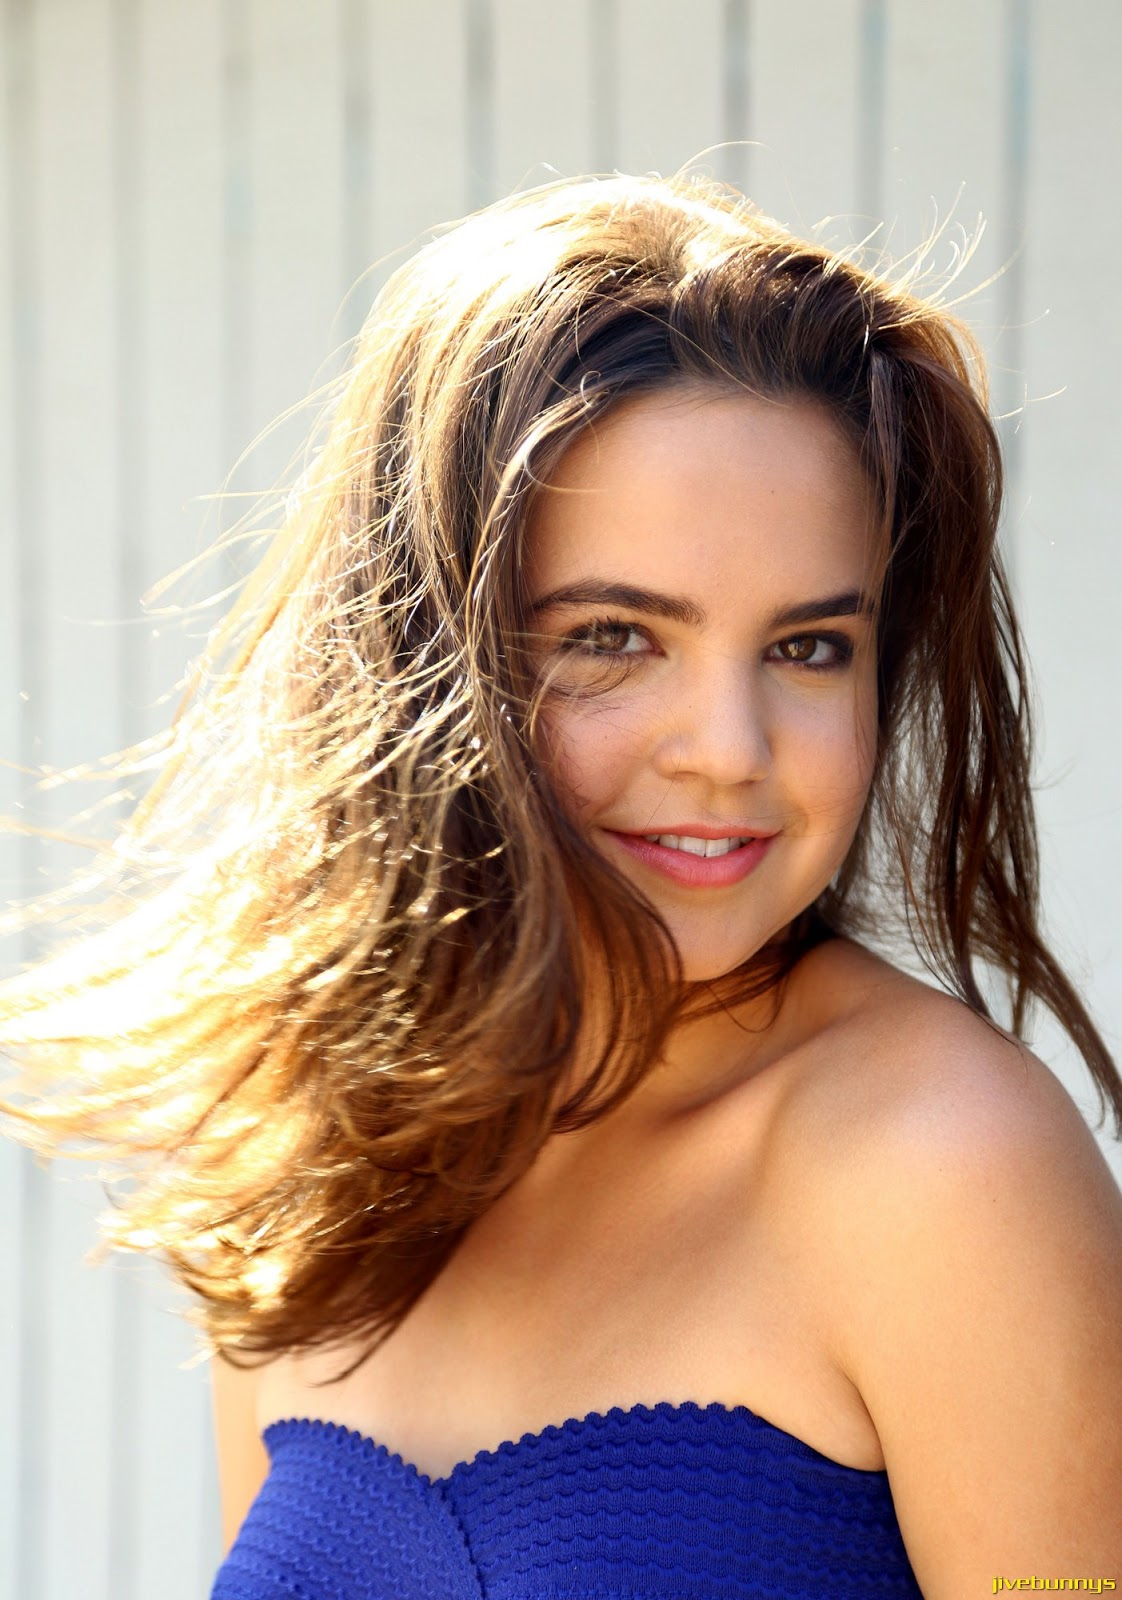 Kleofia pink lace - Celeb Update Bailee Madison Photos Pictures Image Gallery 3